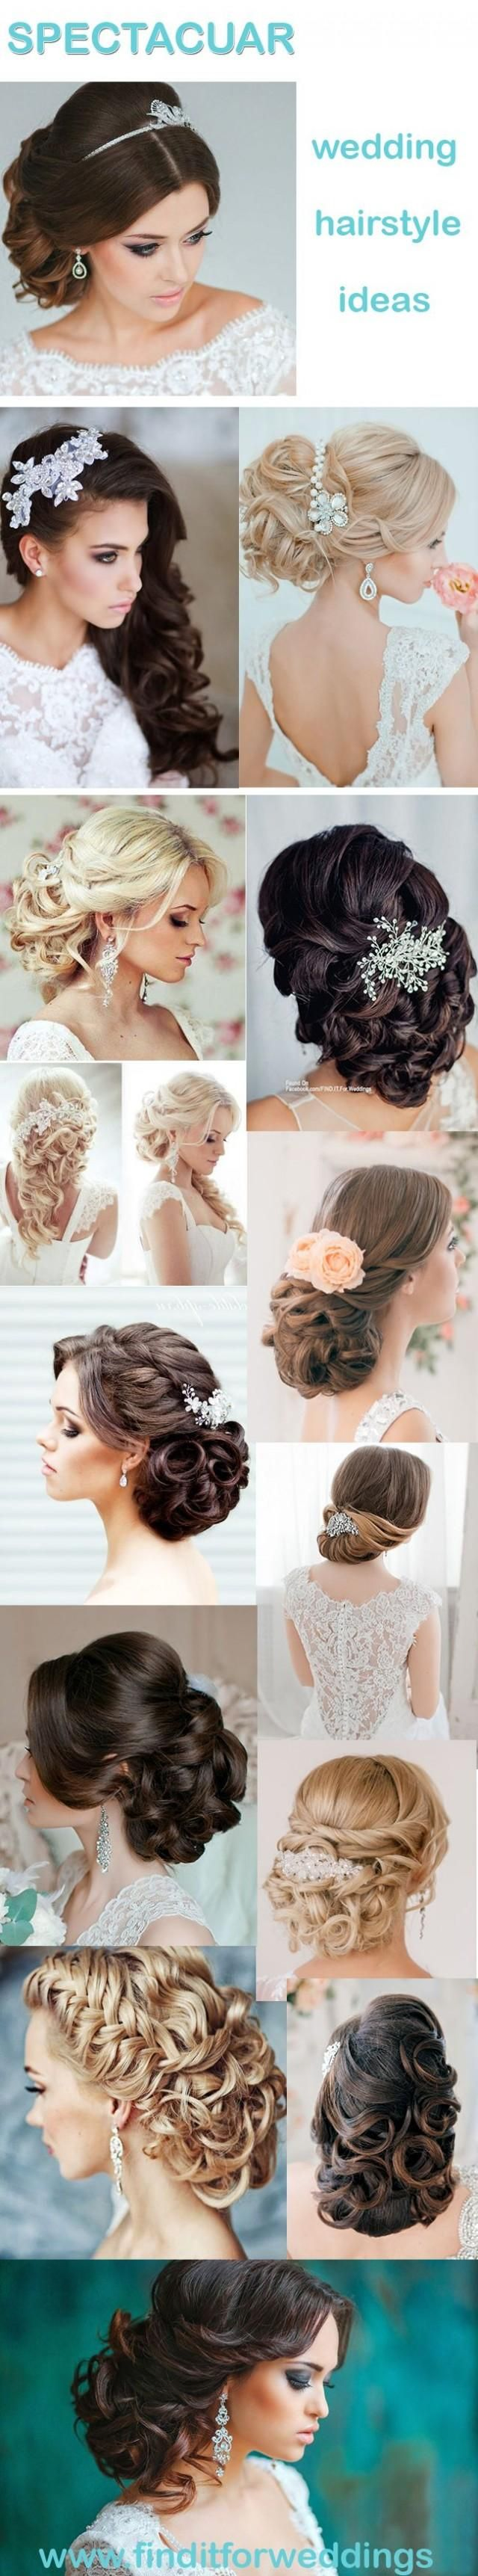 Weddbook is a content discovery engine mostly specialized on wedding concept. You can collect images, videos or articles you discovered organize them, add your own ideas to your collections and share with other people - Wedding hairstyles that include updos and long flowing curls. Choose your hairstyle that suits your wedding theme and your personality